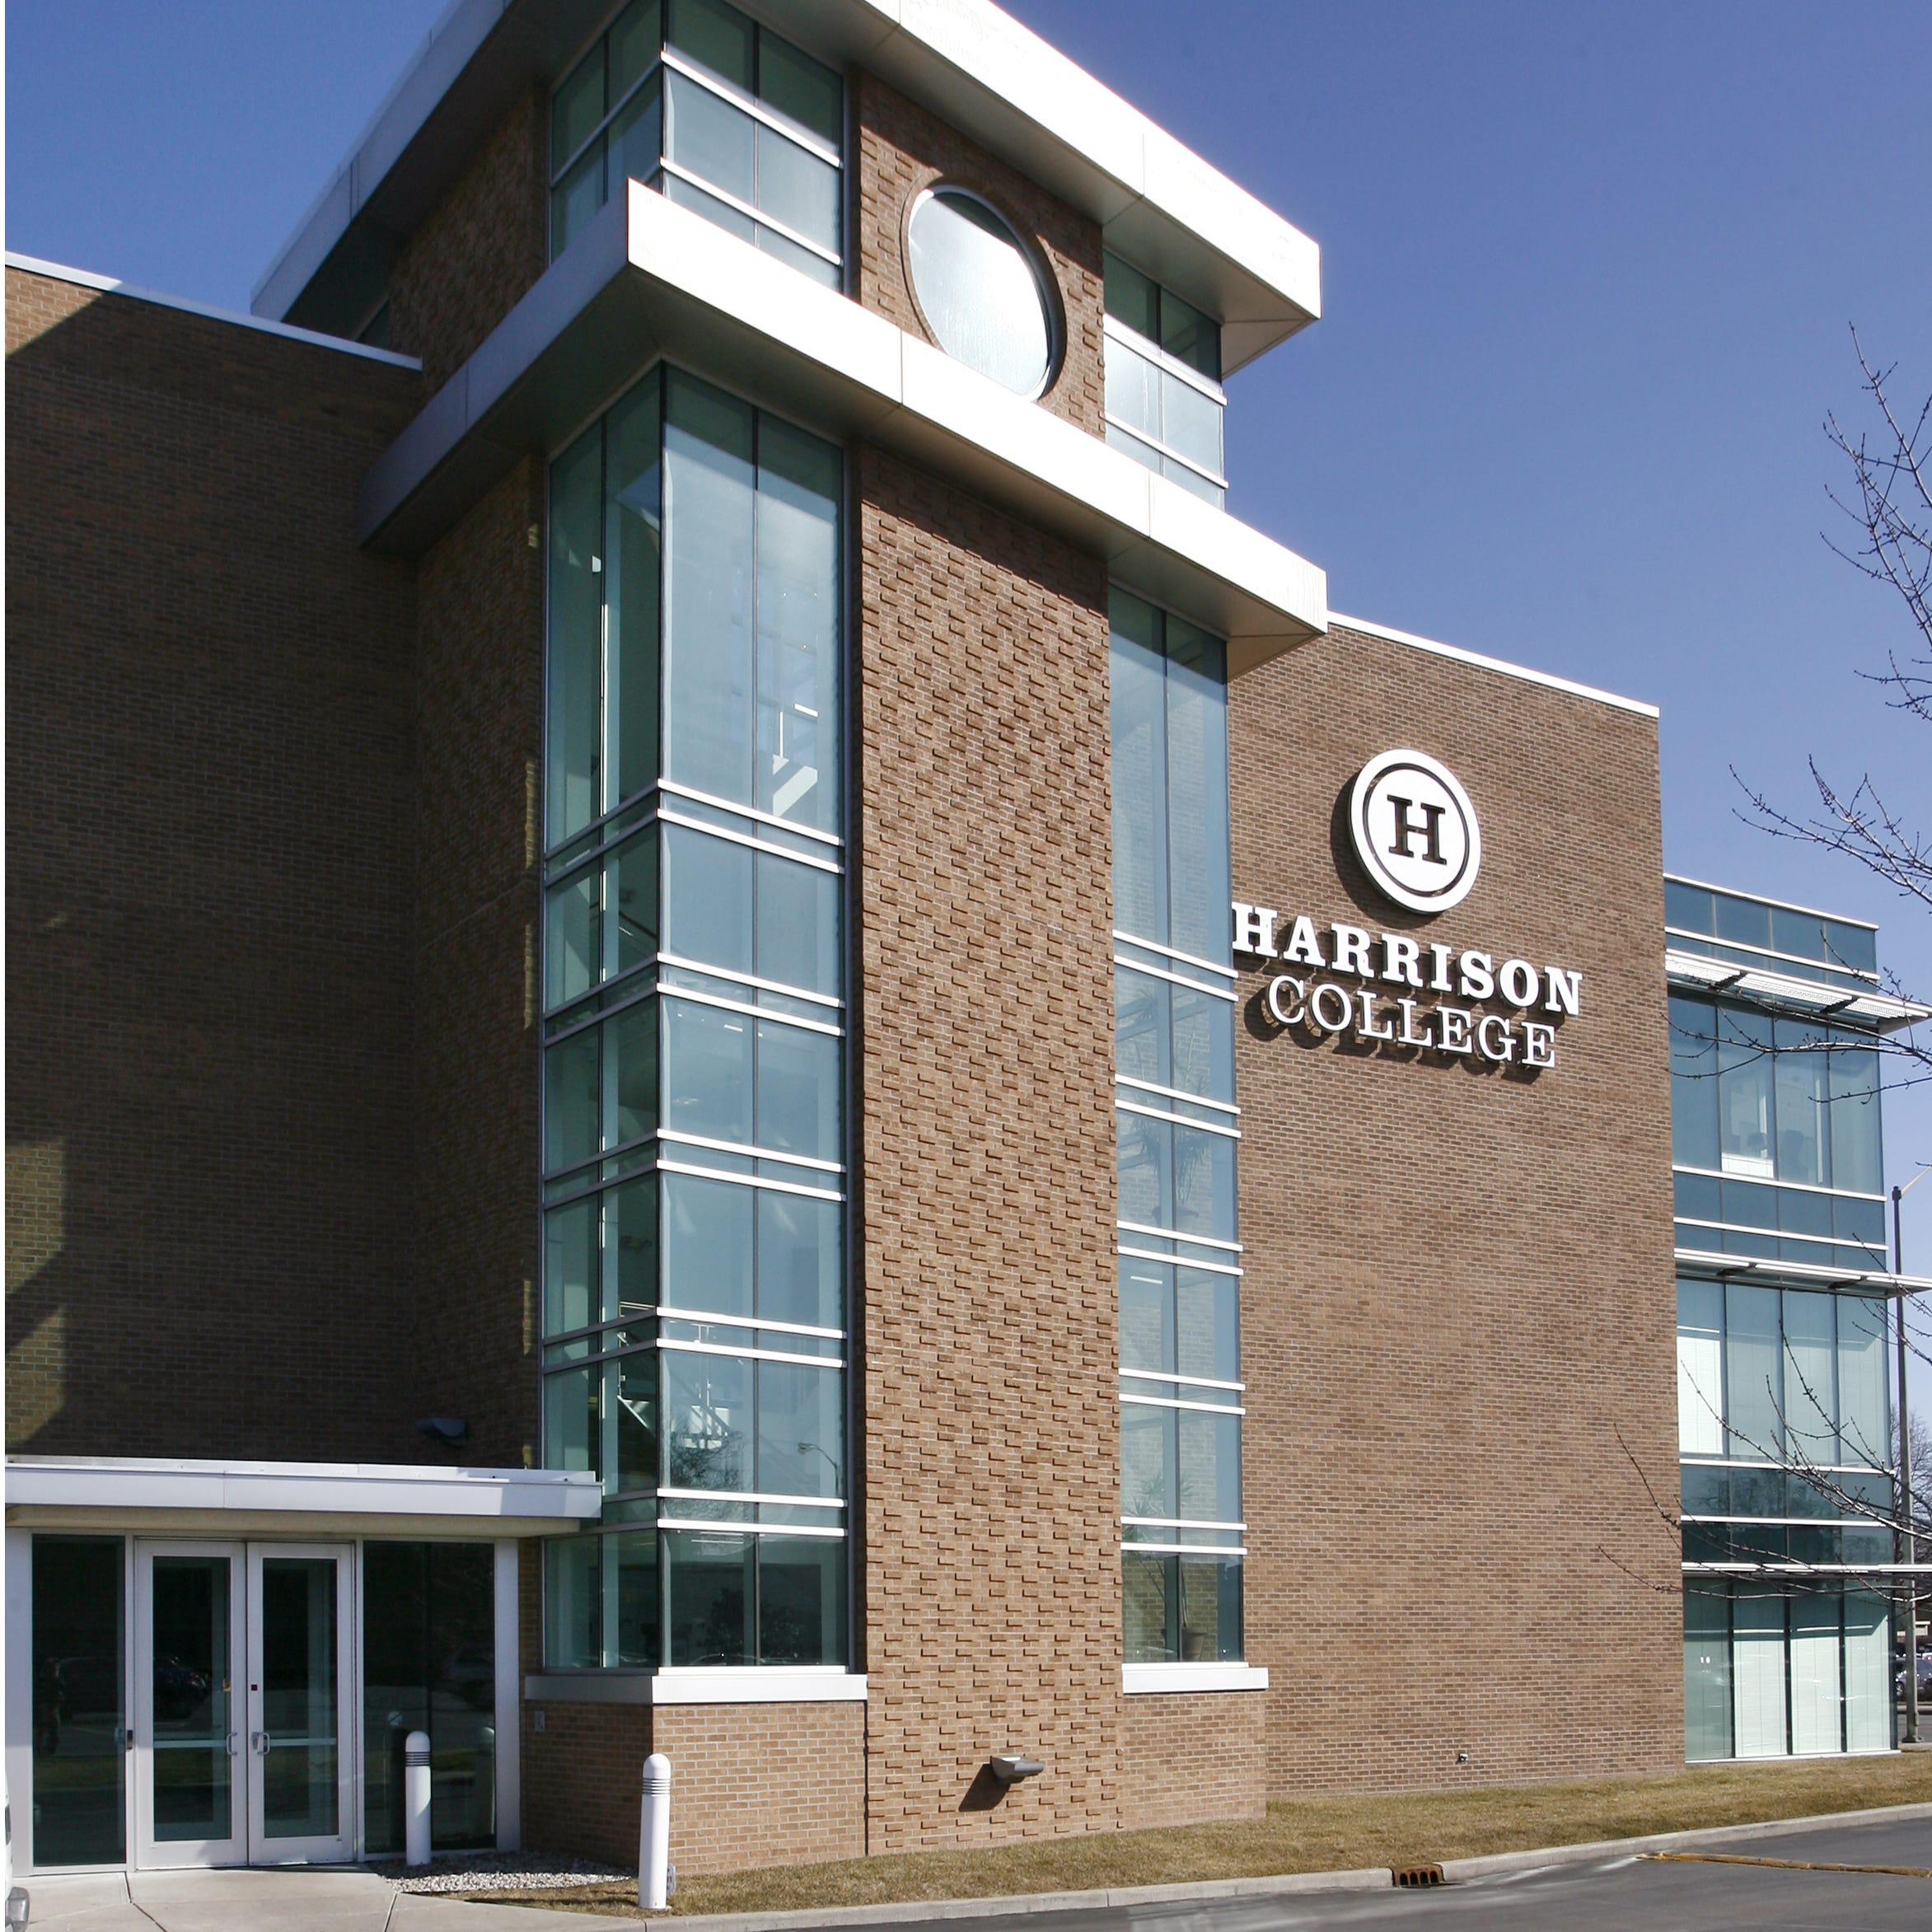 Harrison College closes all campuses, cites declining enrollment